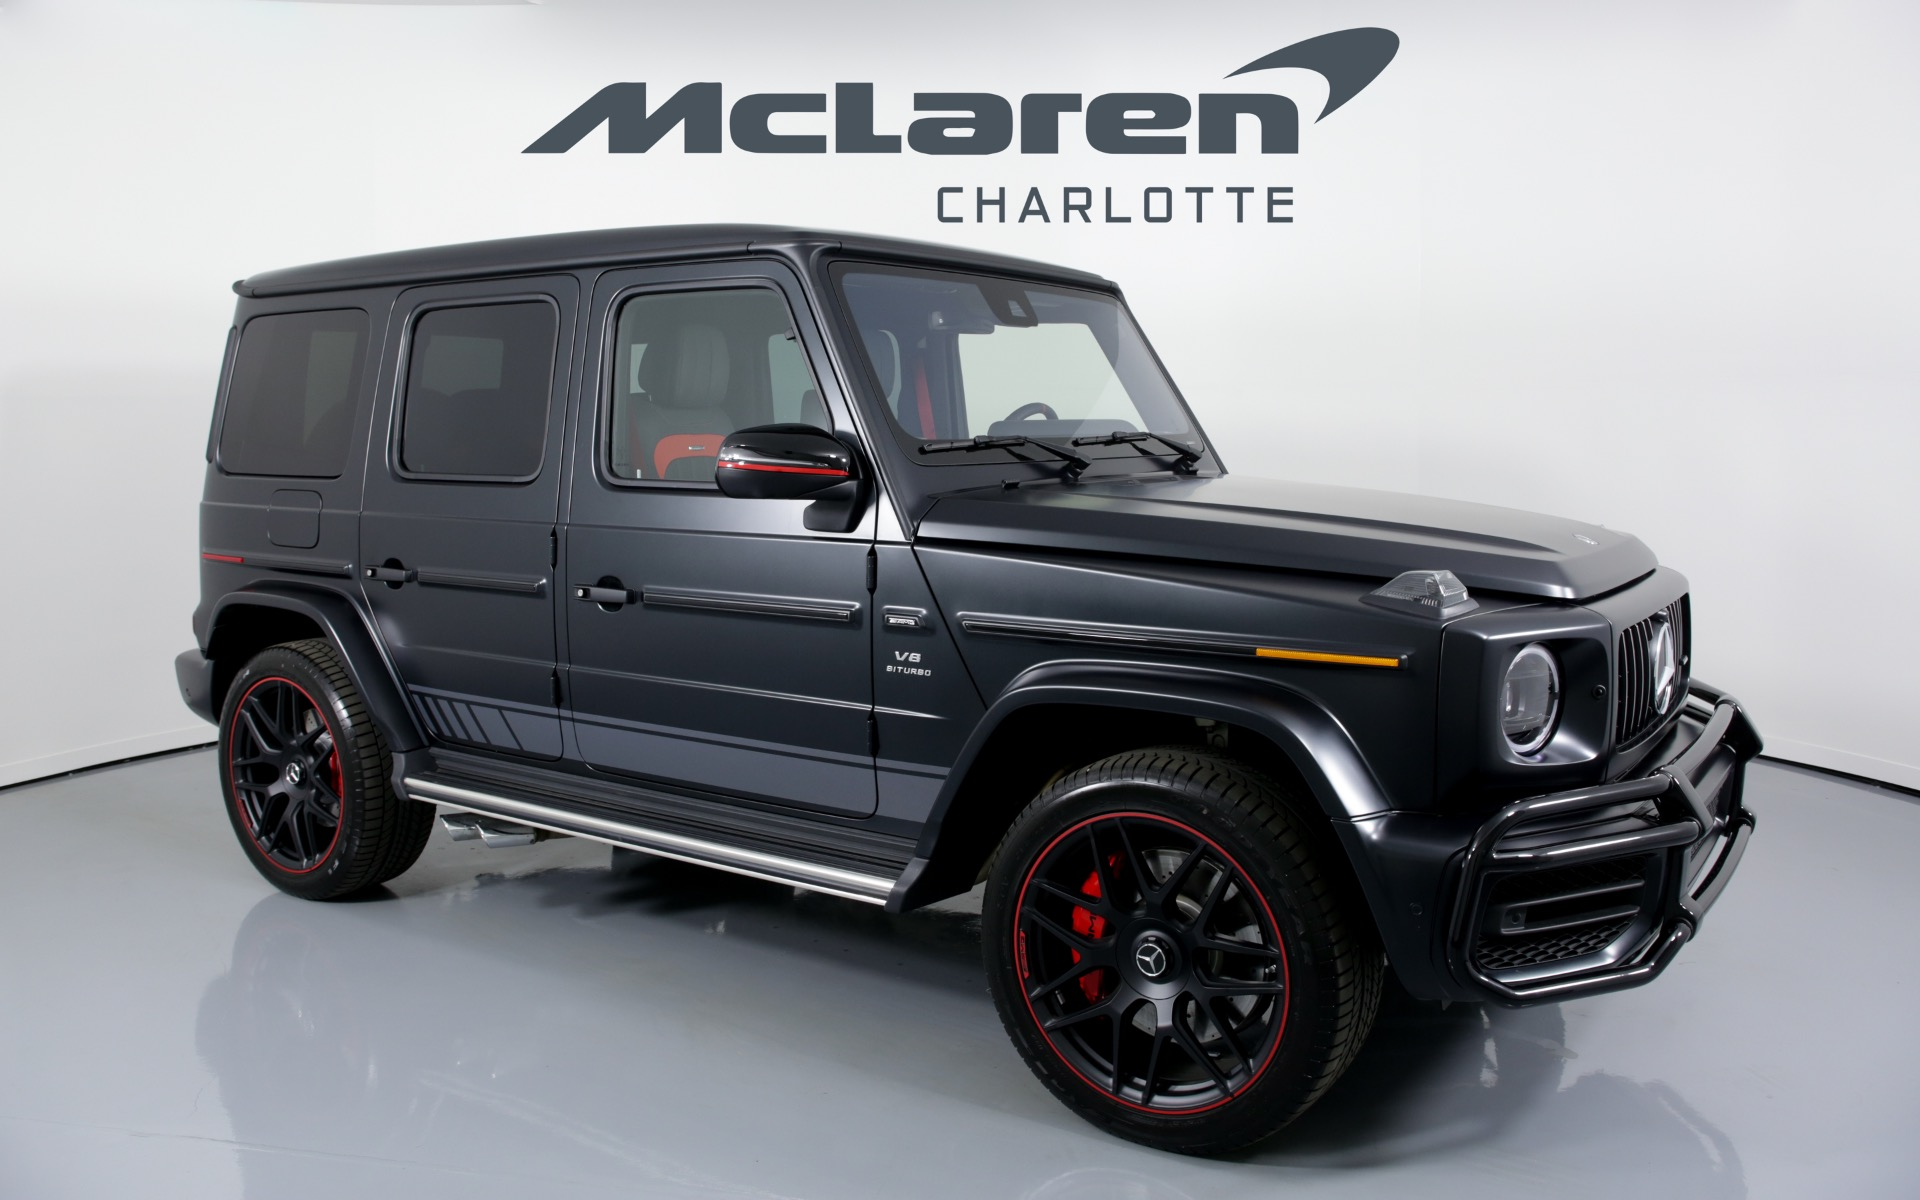 Used 2019 Mercedes Benz G Class Amg G 63 For Sale 249 996 Mclaren Charlotte Stock 308744